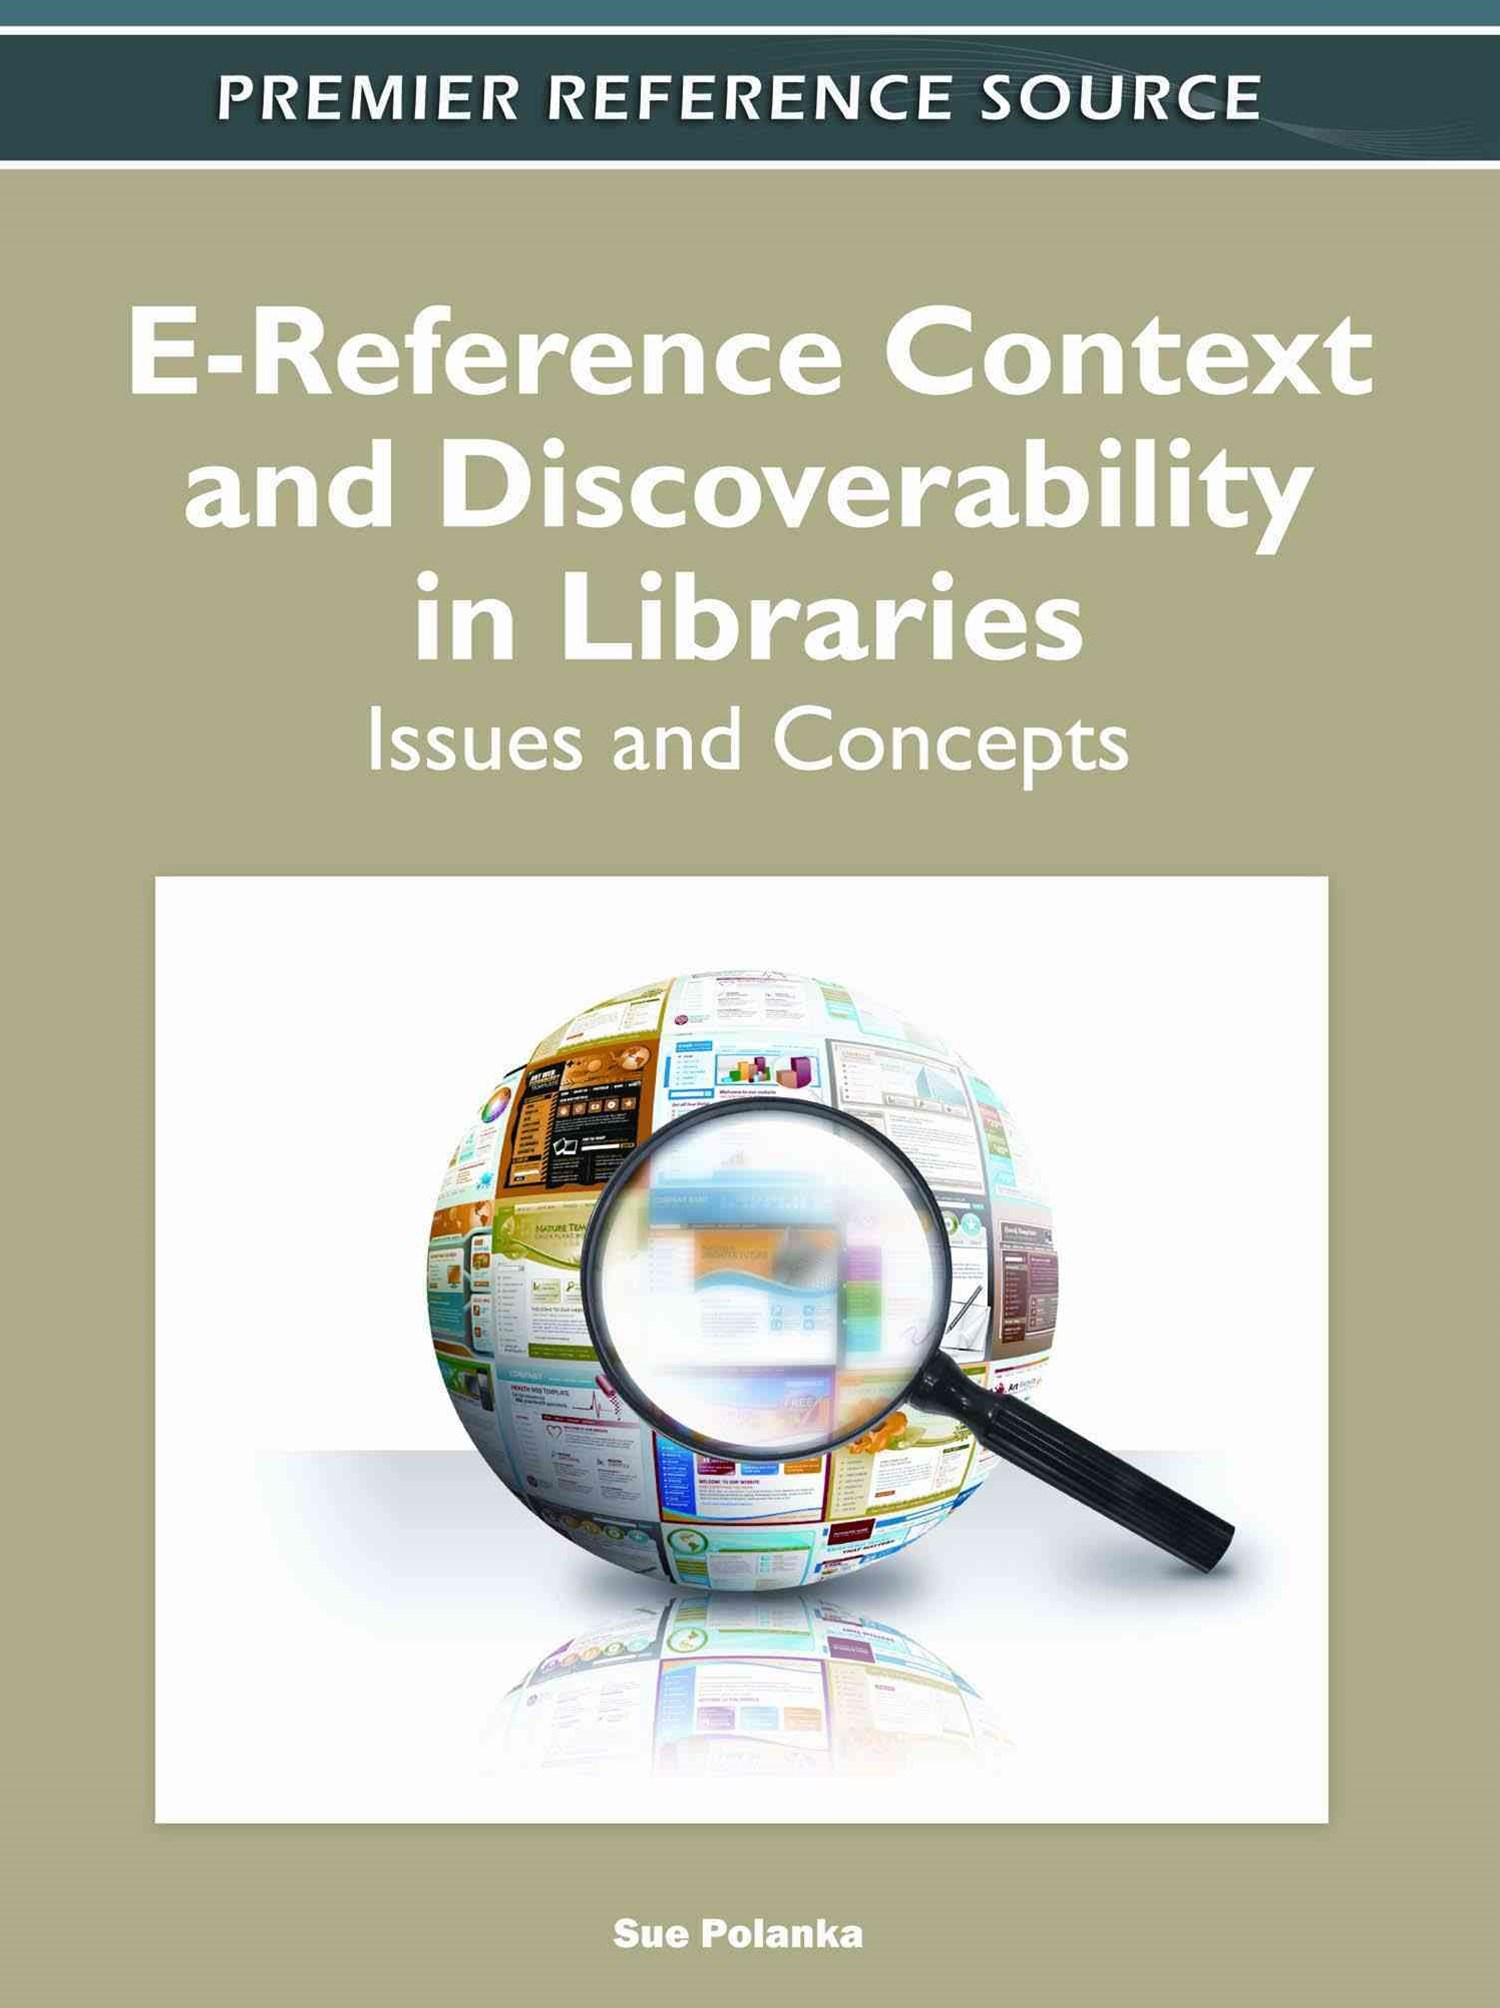 E-Reference Context and Discoverability in Libraries